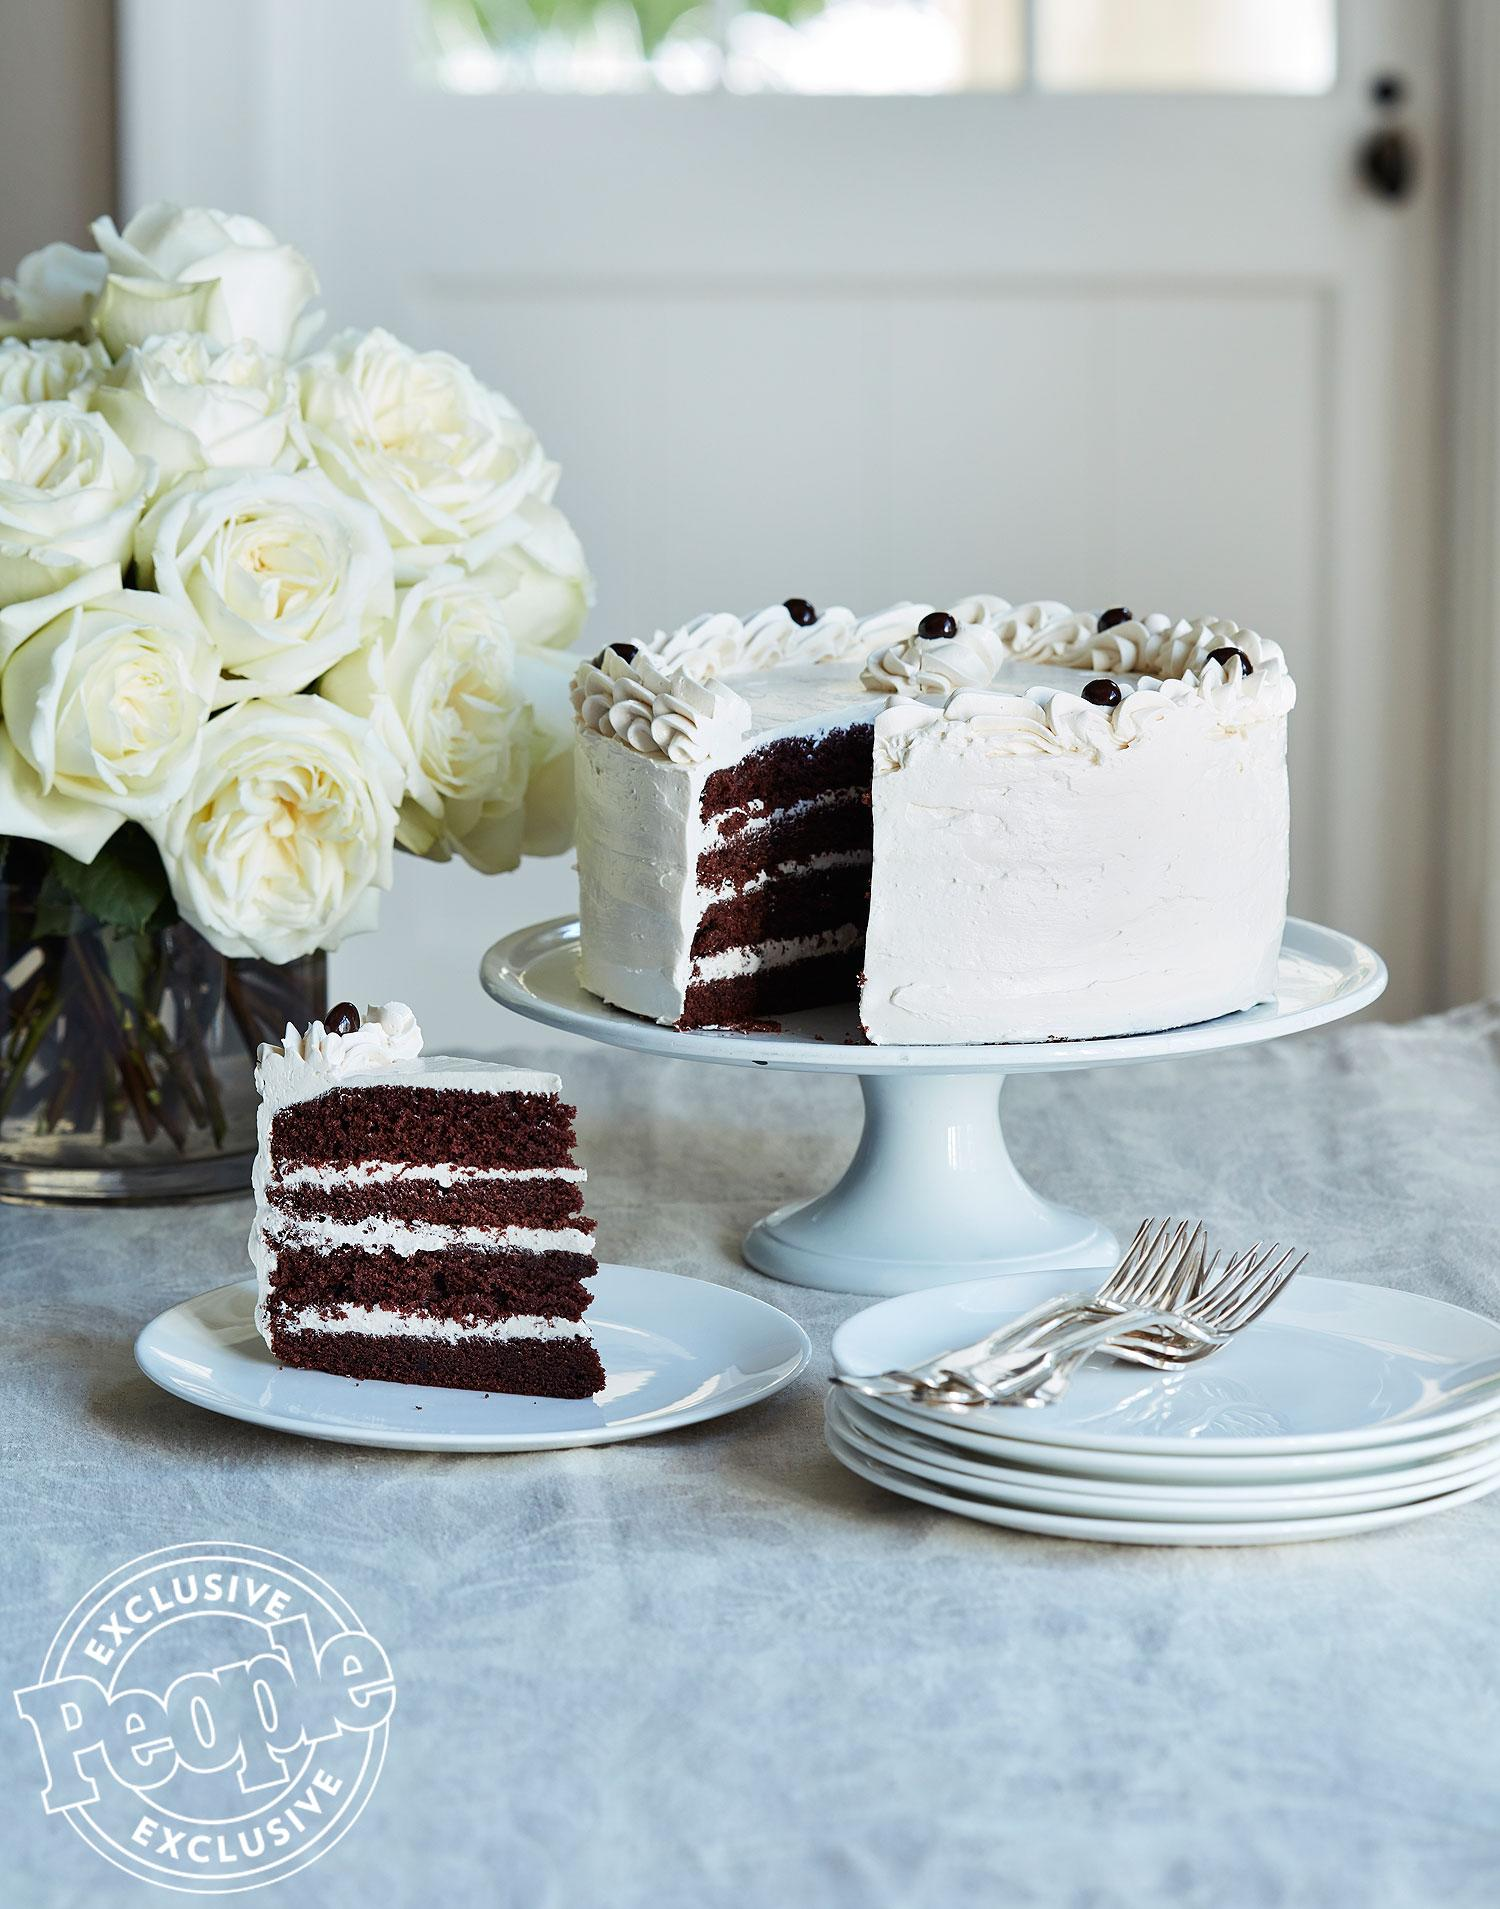 Should Cake With Whipped Cream Be Refrigerated